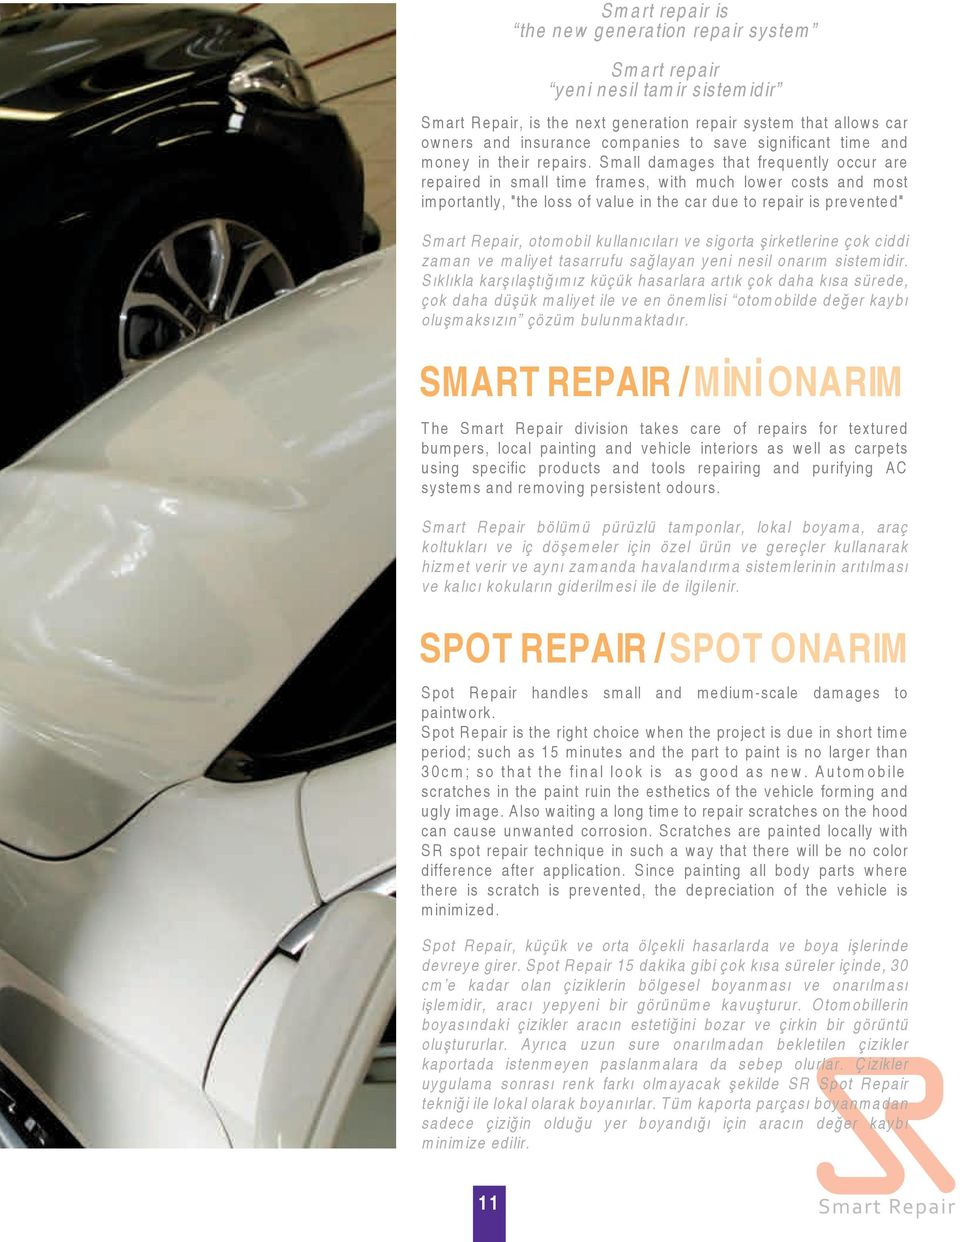 "Small damages that frequently occur are repaired in small time frames, with much lower costs and most importantly, ""the loss of value in the car due to repair is prevented"" Smart Repair, otomobil"